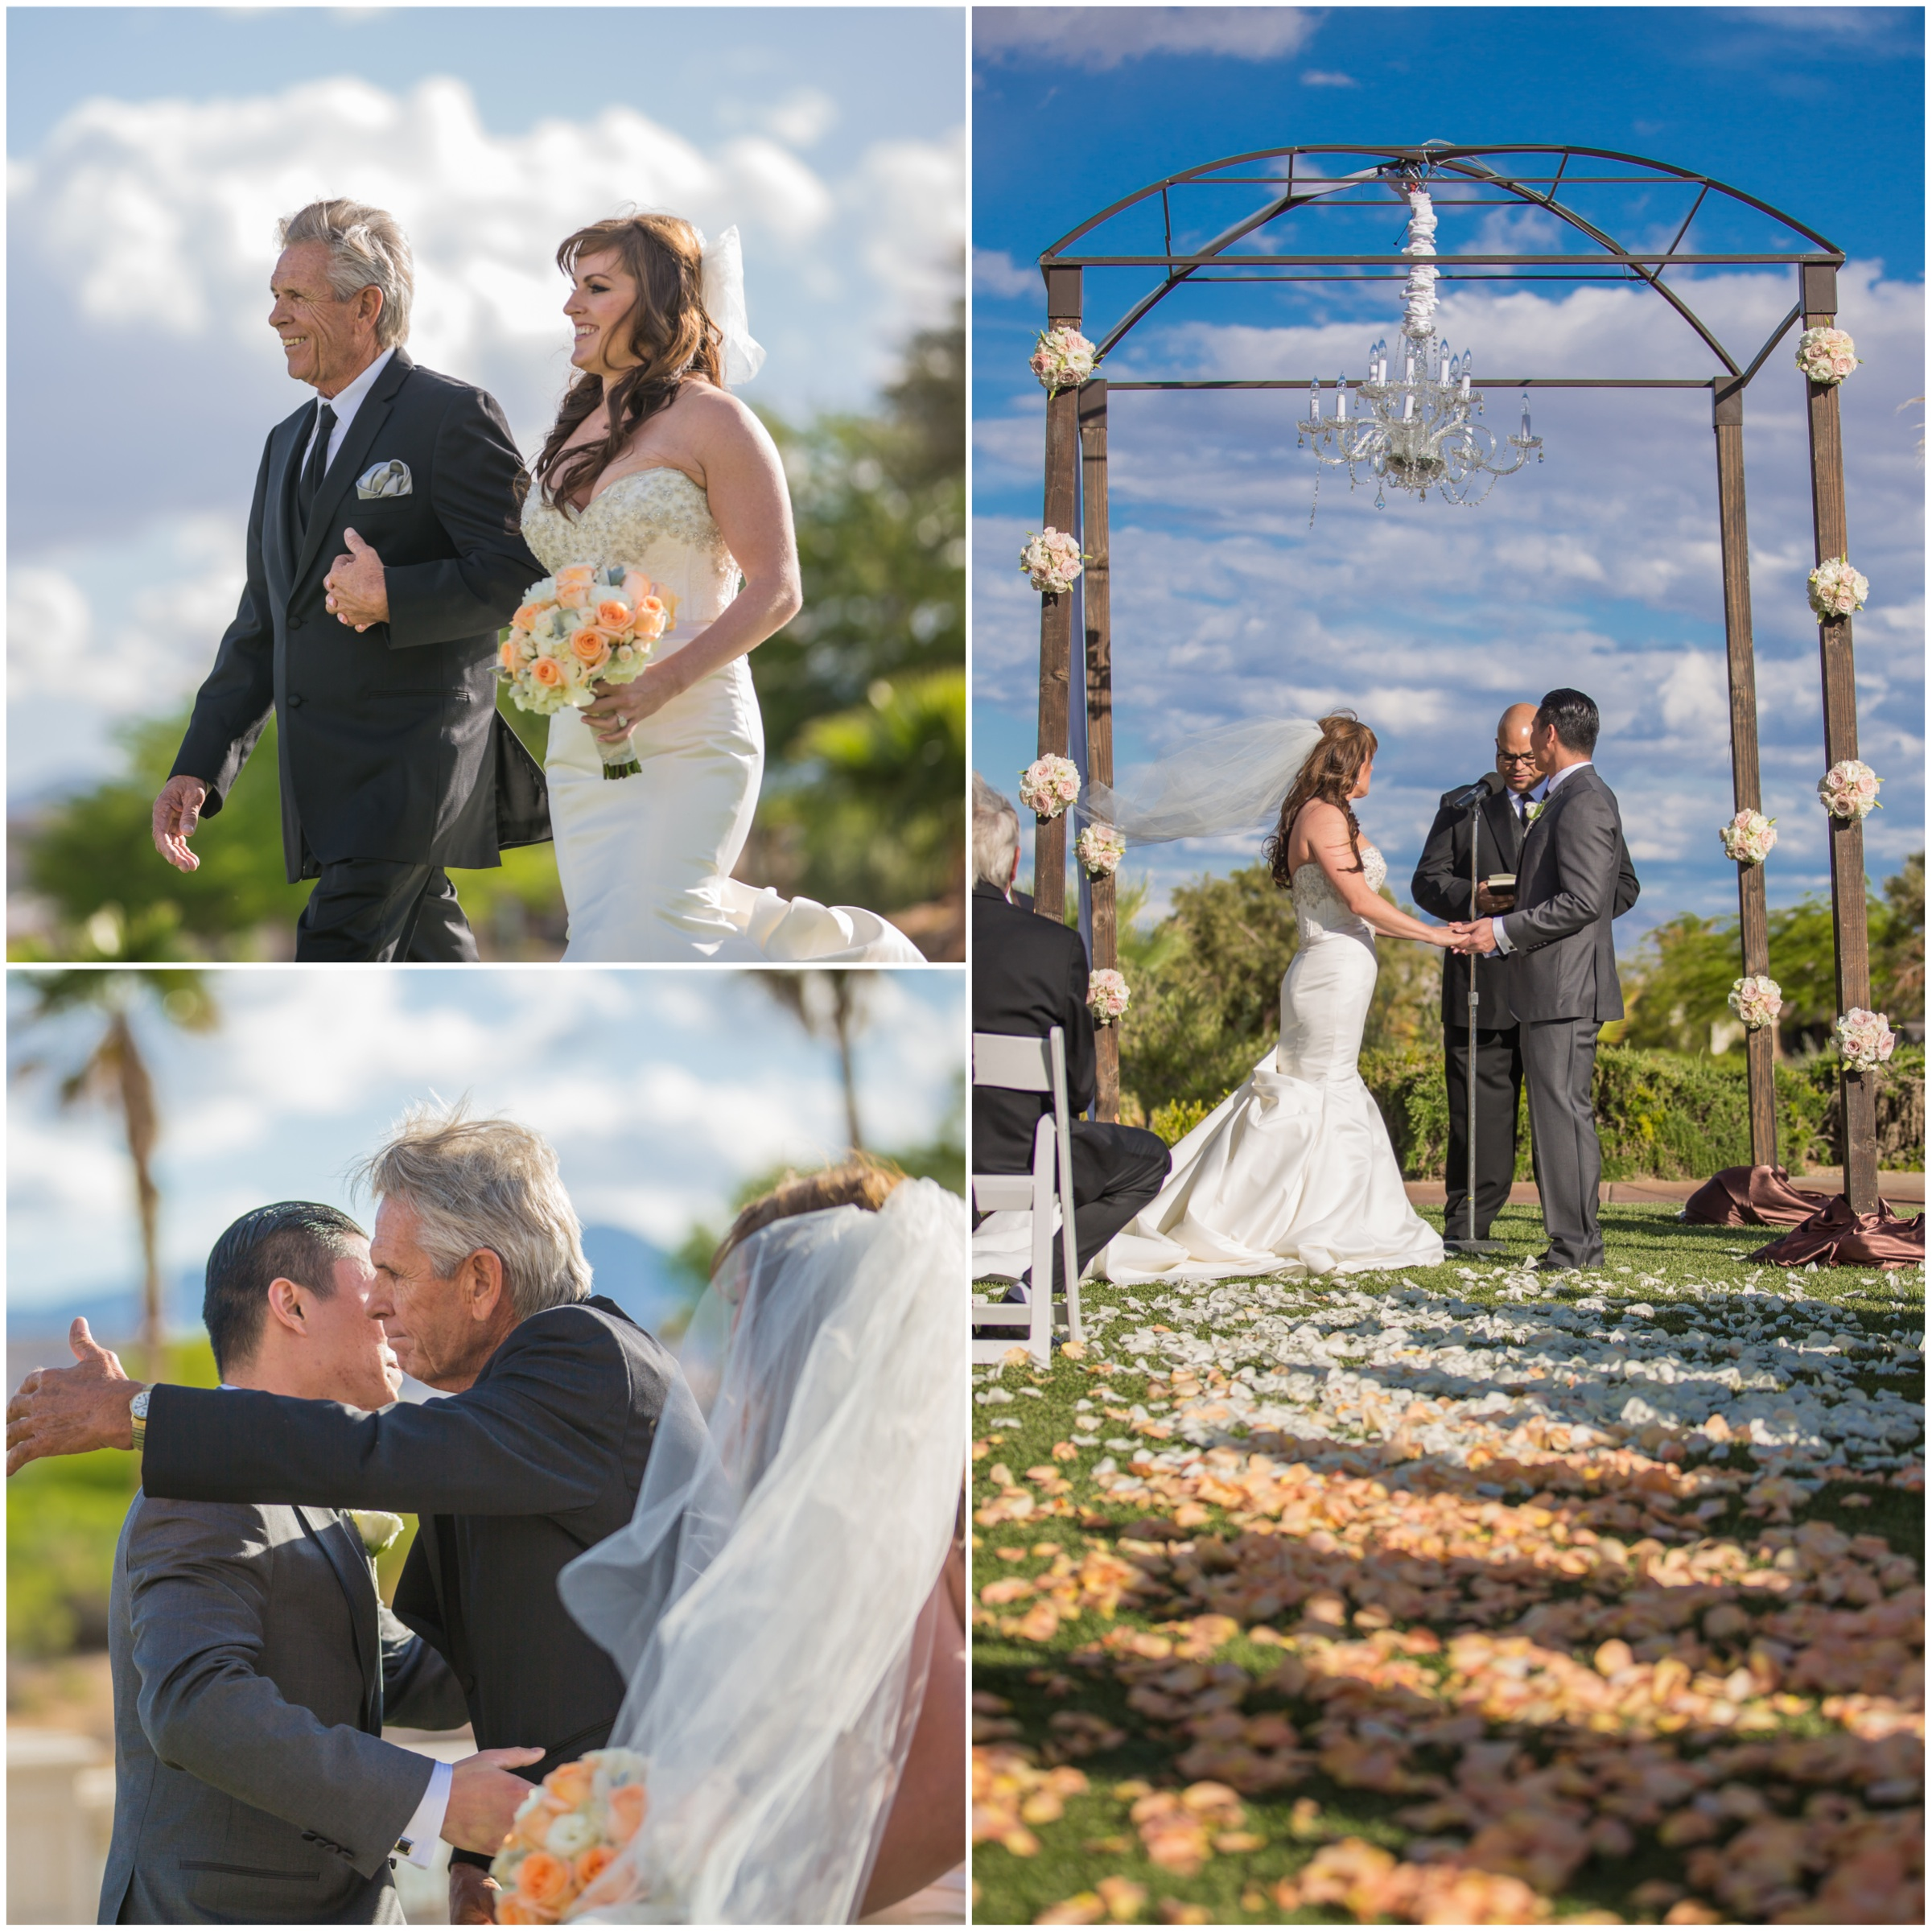 Michelle & Michael's Ceremony was beautiful, romantic, and personal.  I love that moment when a bride is given away, and seeing a father embrace his new son!     Las Vegas Wedding at   Siena Golf Club    |  Photography by   Ella Gagiano    | Floral and Decor by  Naakiti Floral   |  Las Wedding Planner   Andrea Eppolito